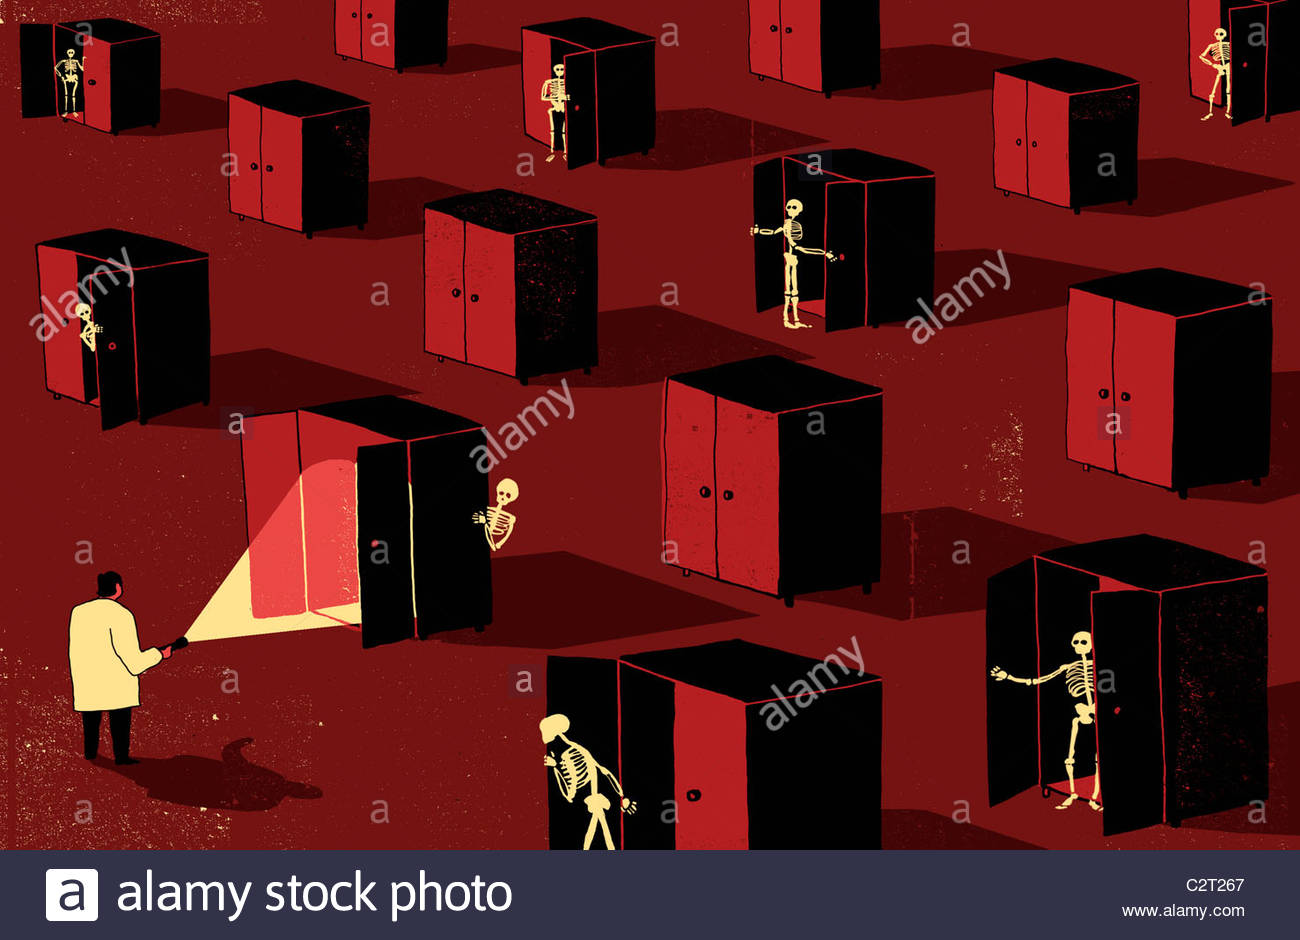 Man with flashlight looking for skeletons in closets - Stock Image